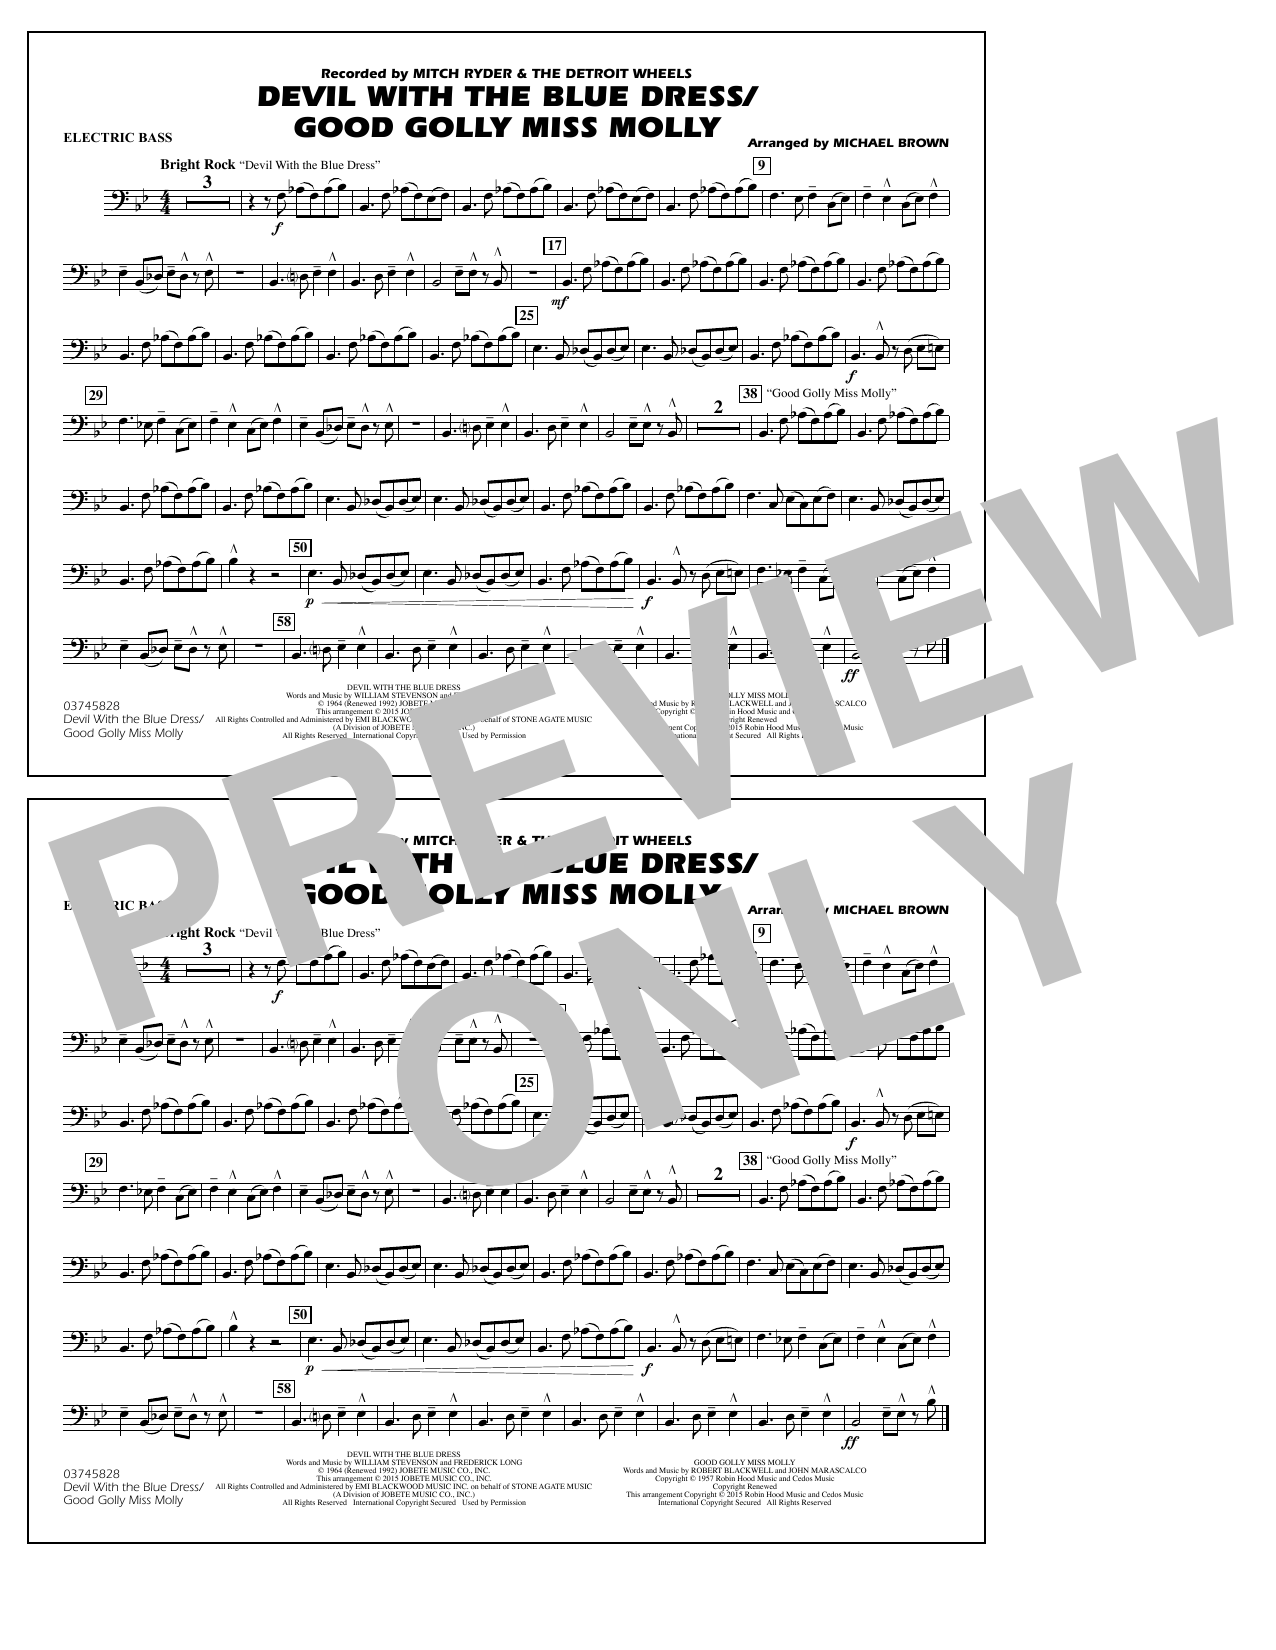 Devil with the Blue Dress/Good Golly Miss Molly - Electric Bass (Marching Band)